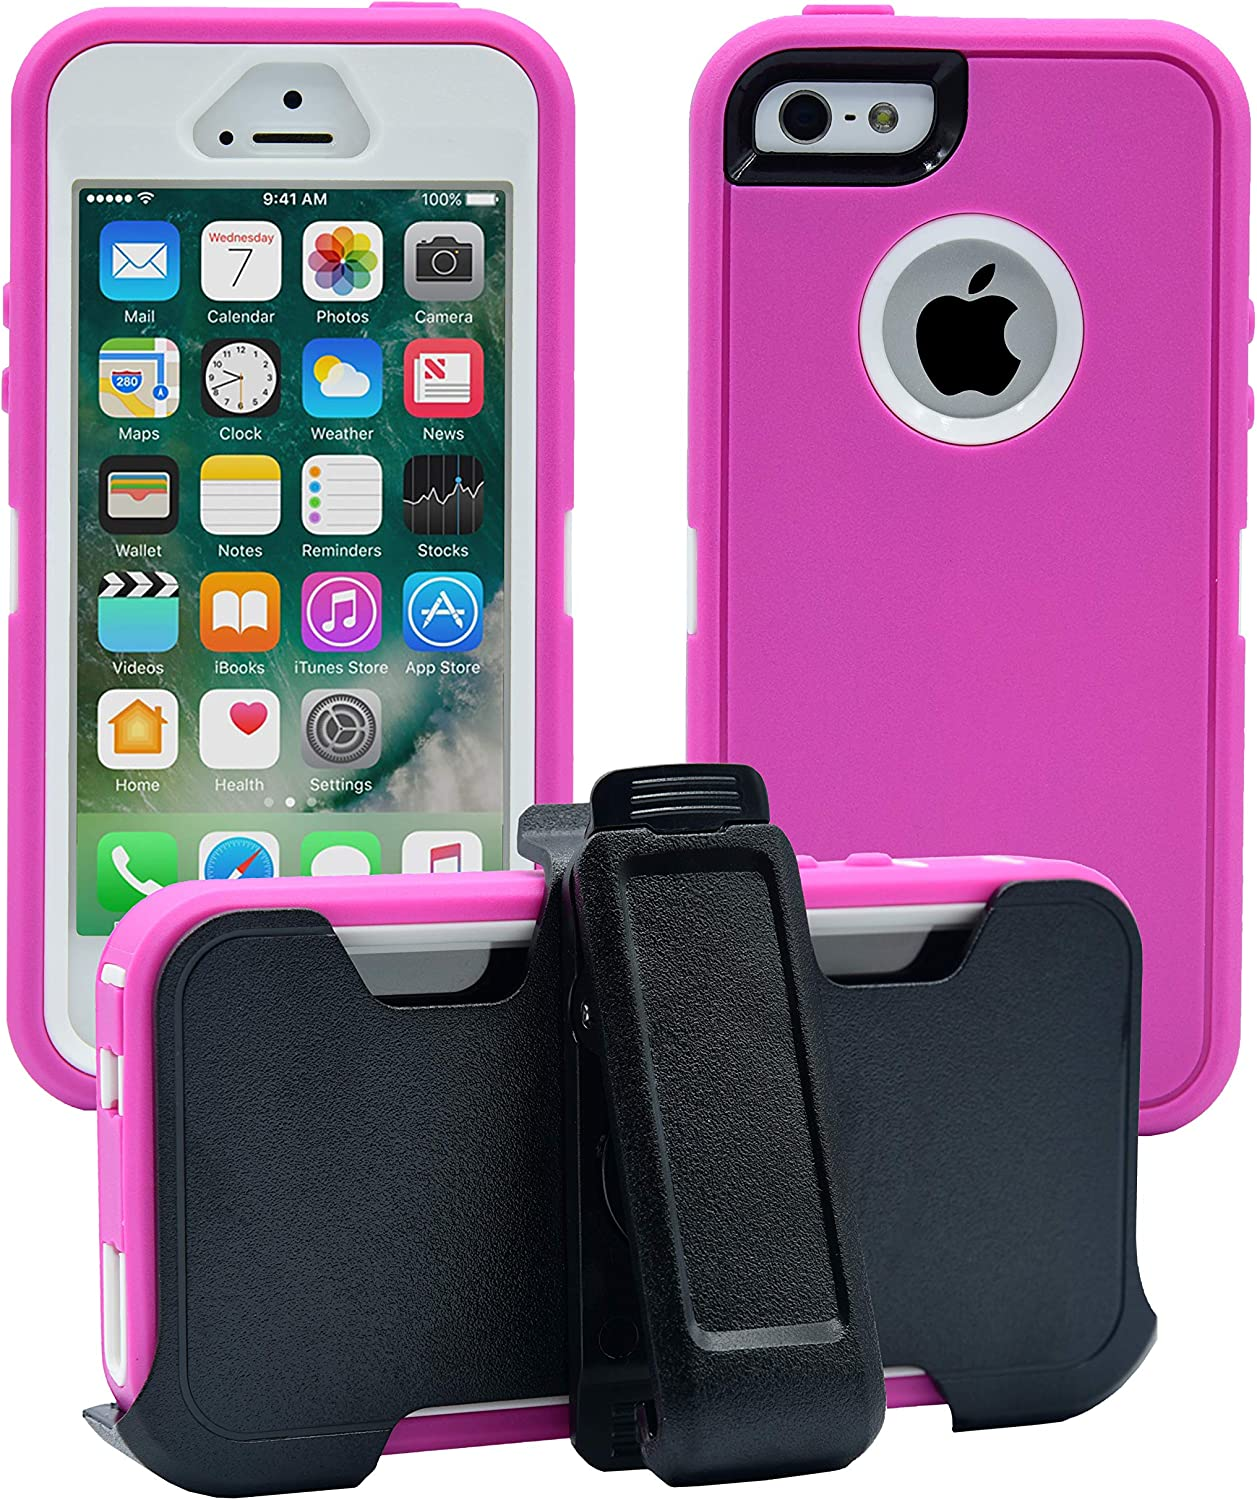 AlphaCell Cover Compatible with iPhone 5 / 5S / SE (2016)| 2-in-1 Screen Protector & Holster Case | Full Body Military Grade Protection with Carrying Belt Clip | Protective Drop-Proof Shock-Proof